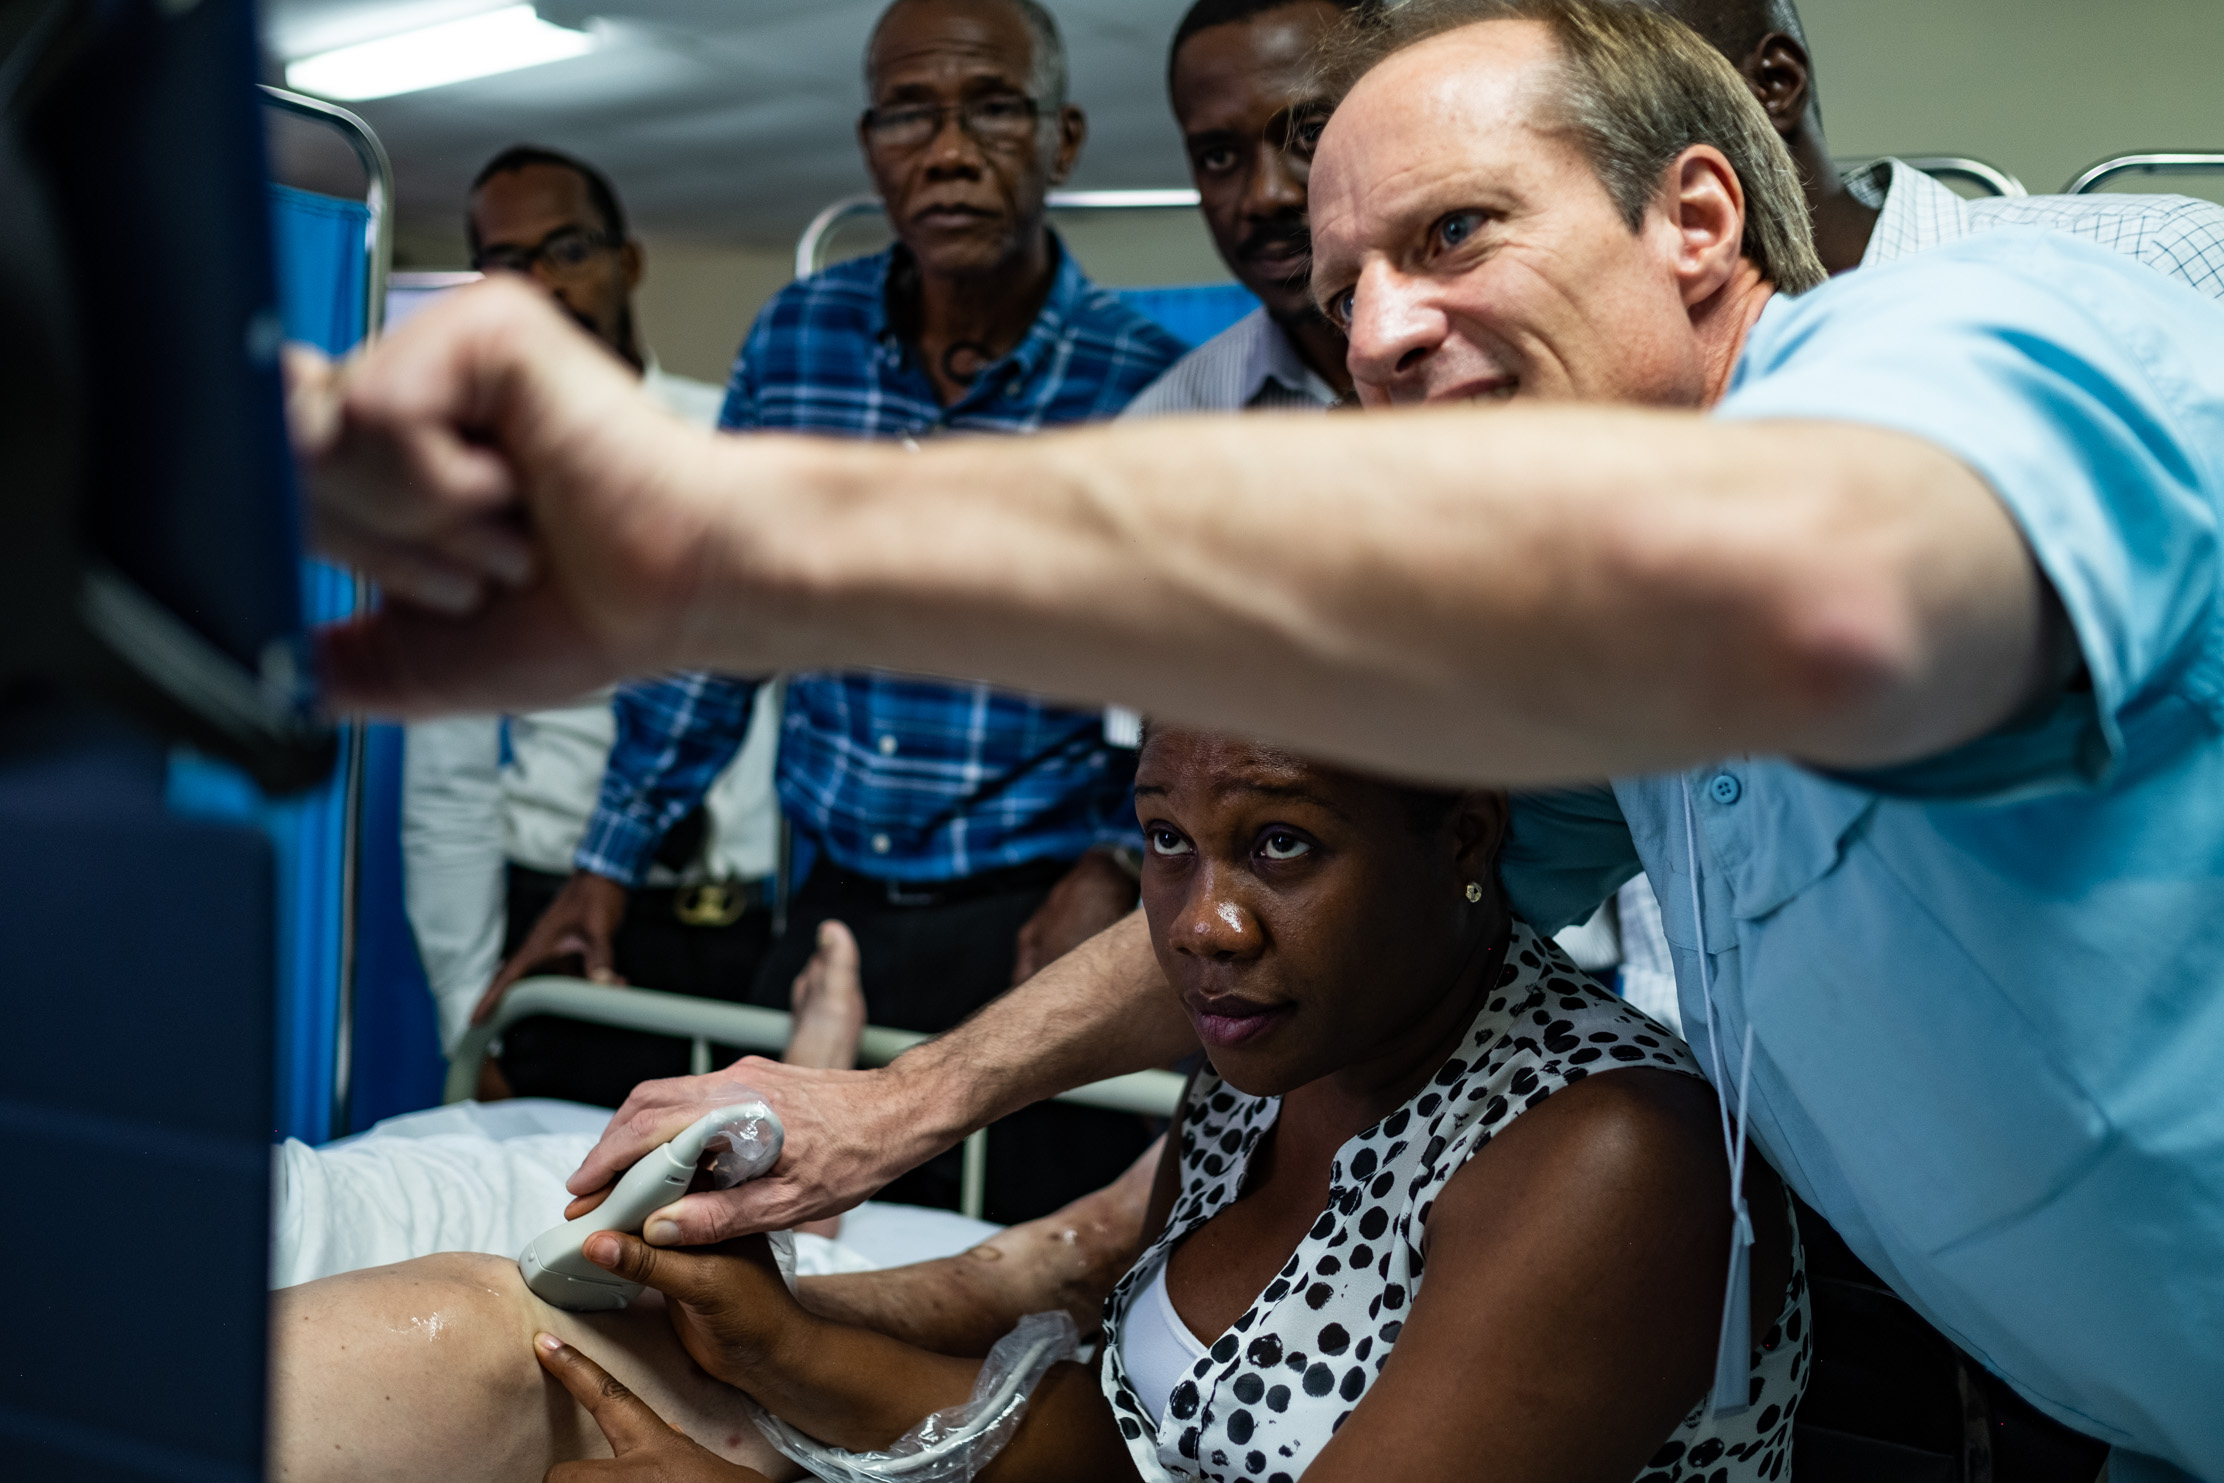 Dr. Cliff, NYAGI founder and ultrasound champion, uses 7D Imaging's mskNAV software to show a Haitian doctor what she should be looking for in a knee.